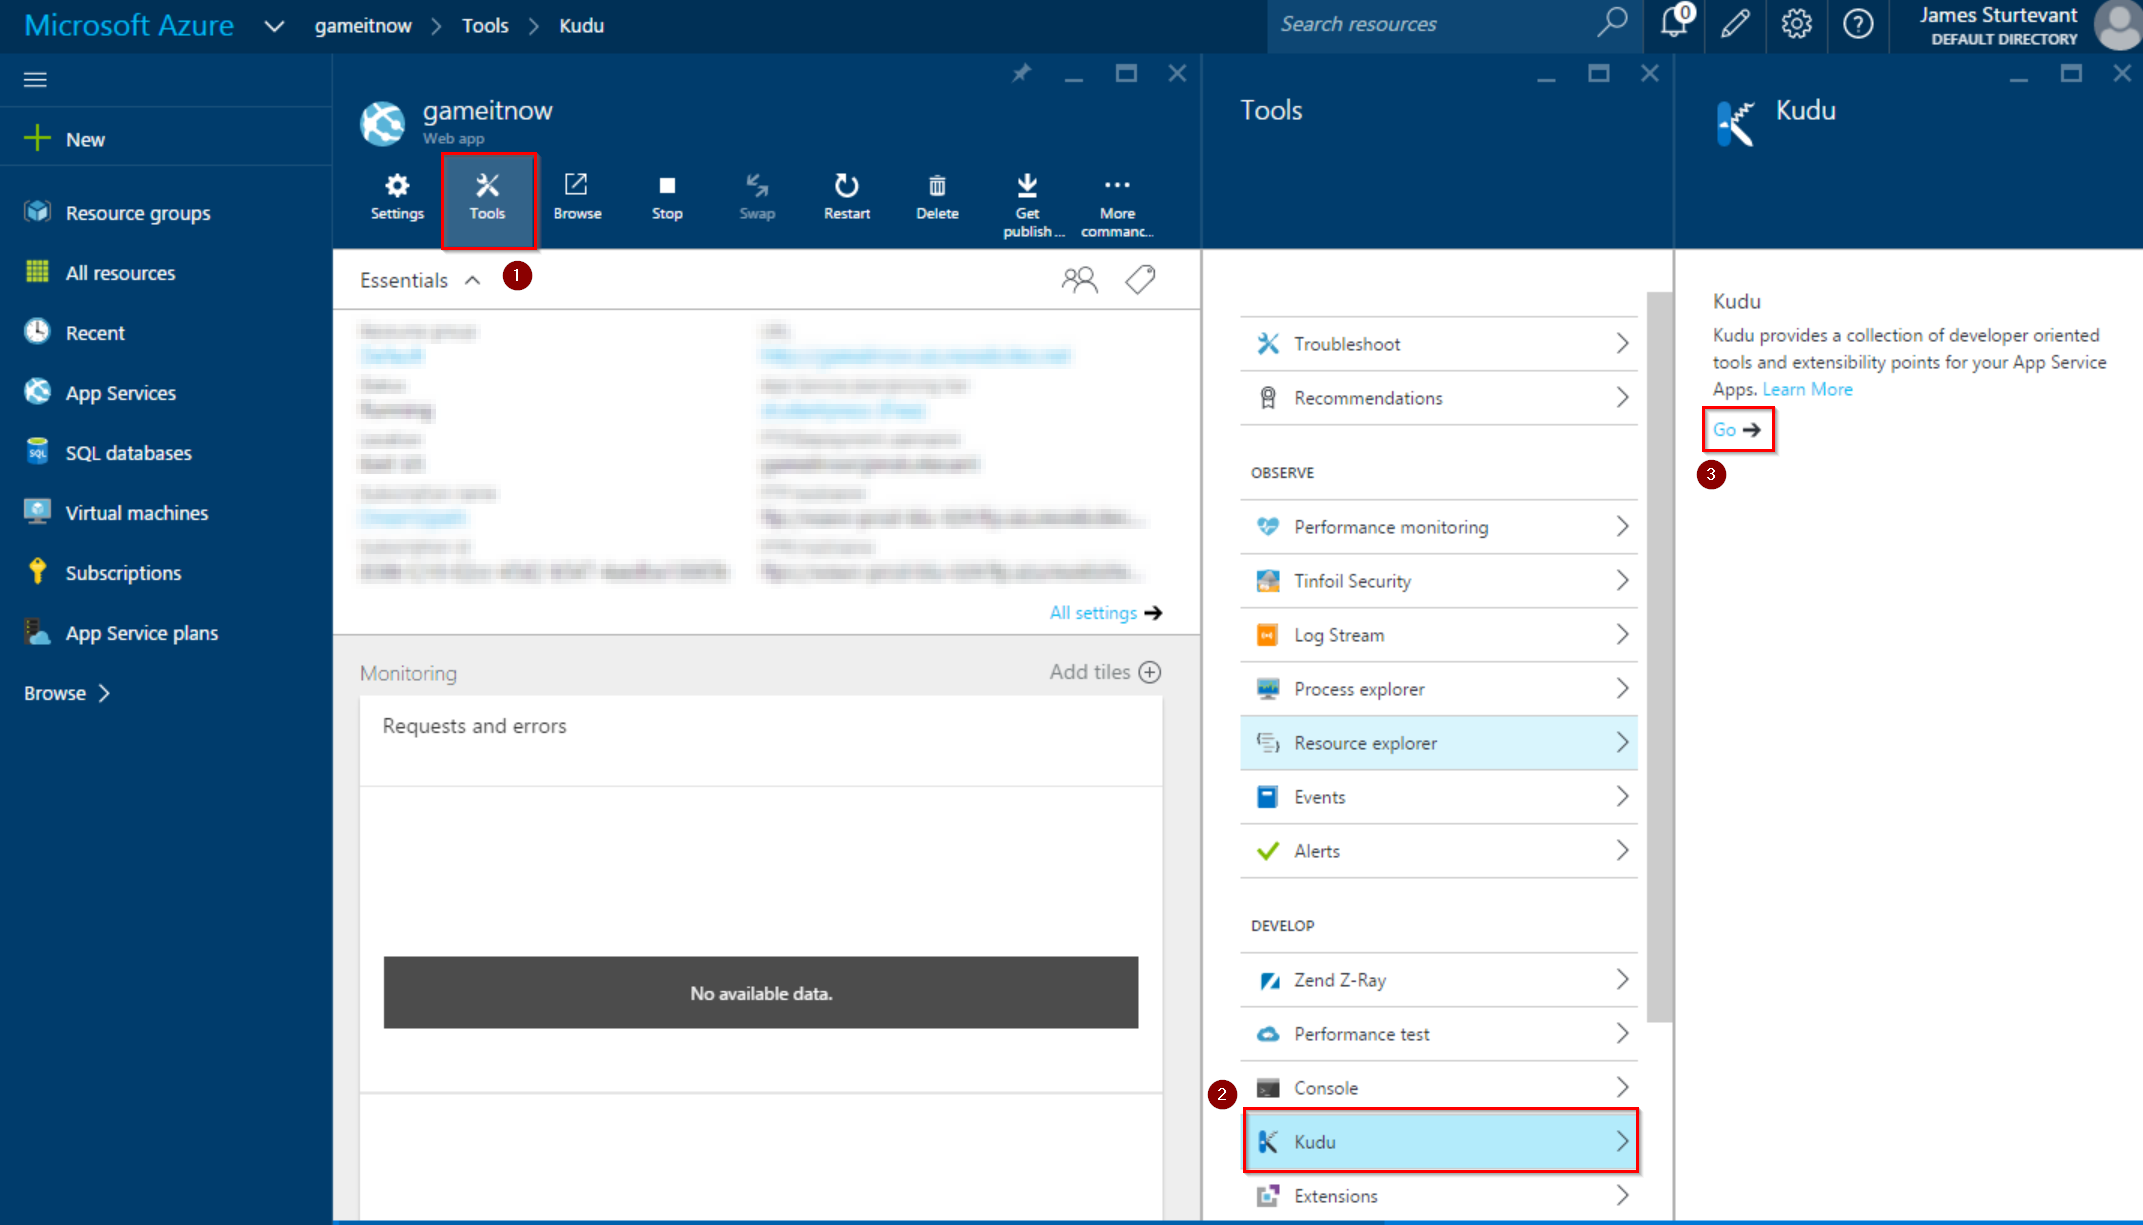 launch Kudu from azure portal